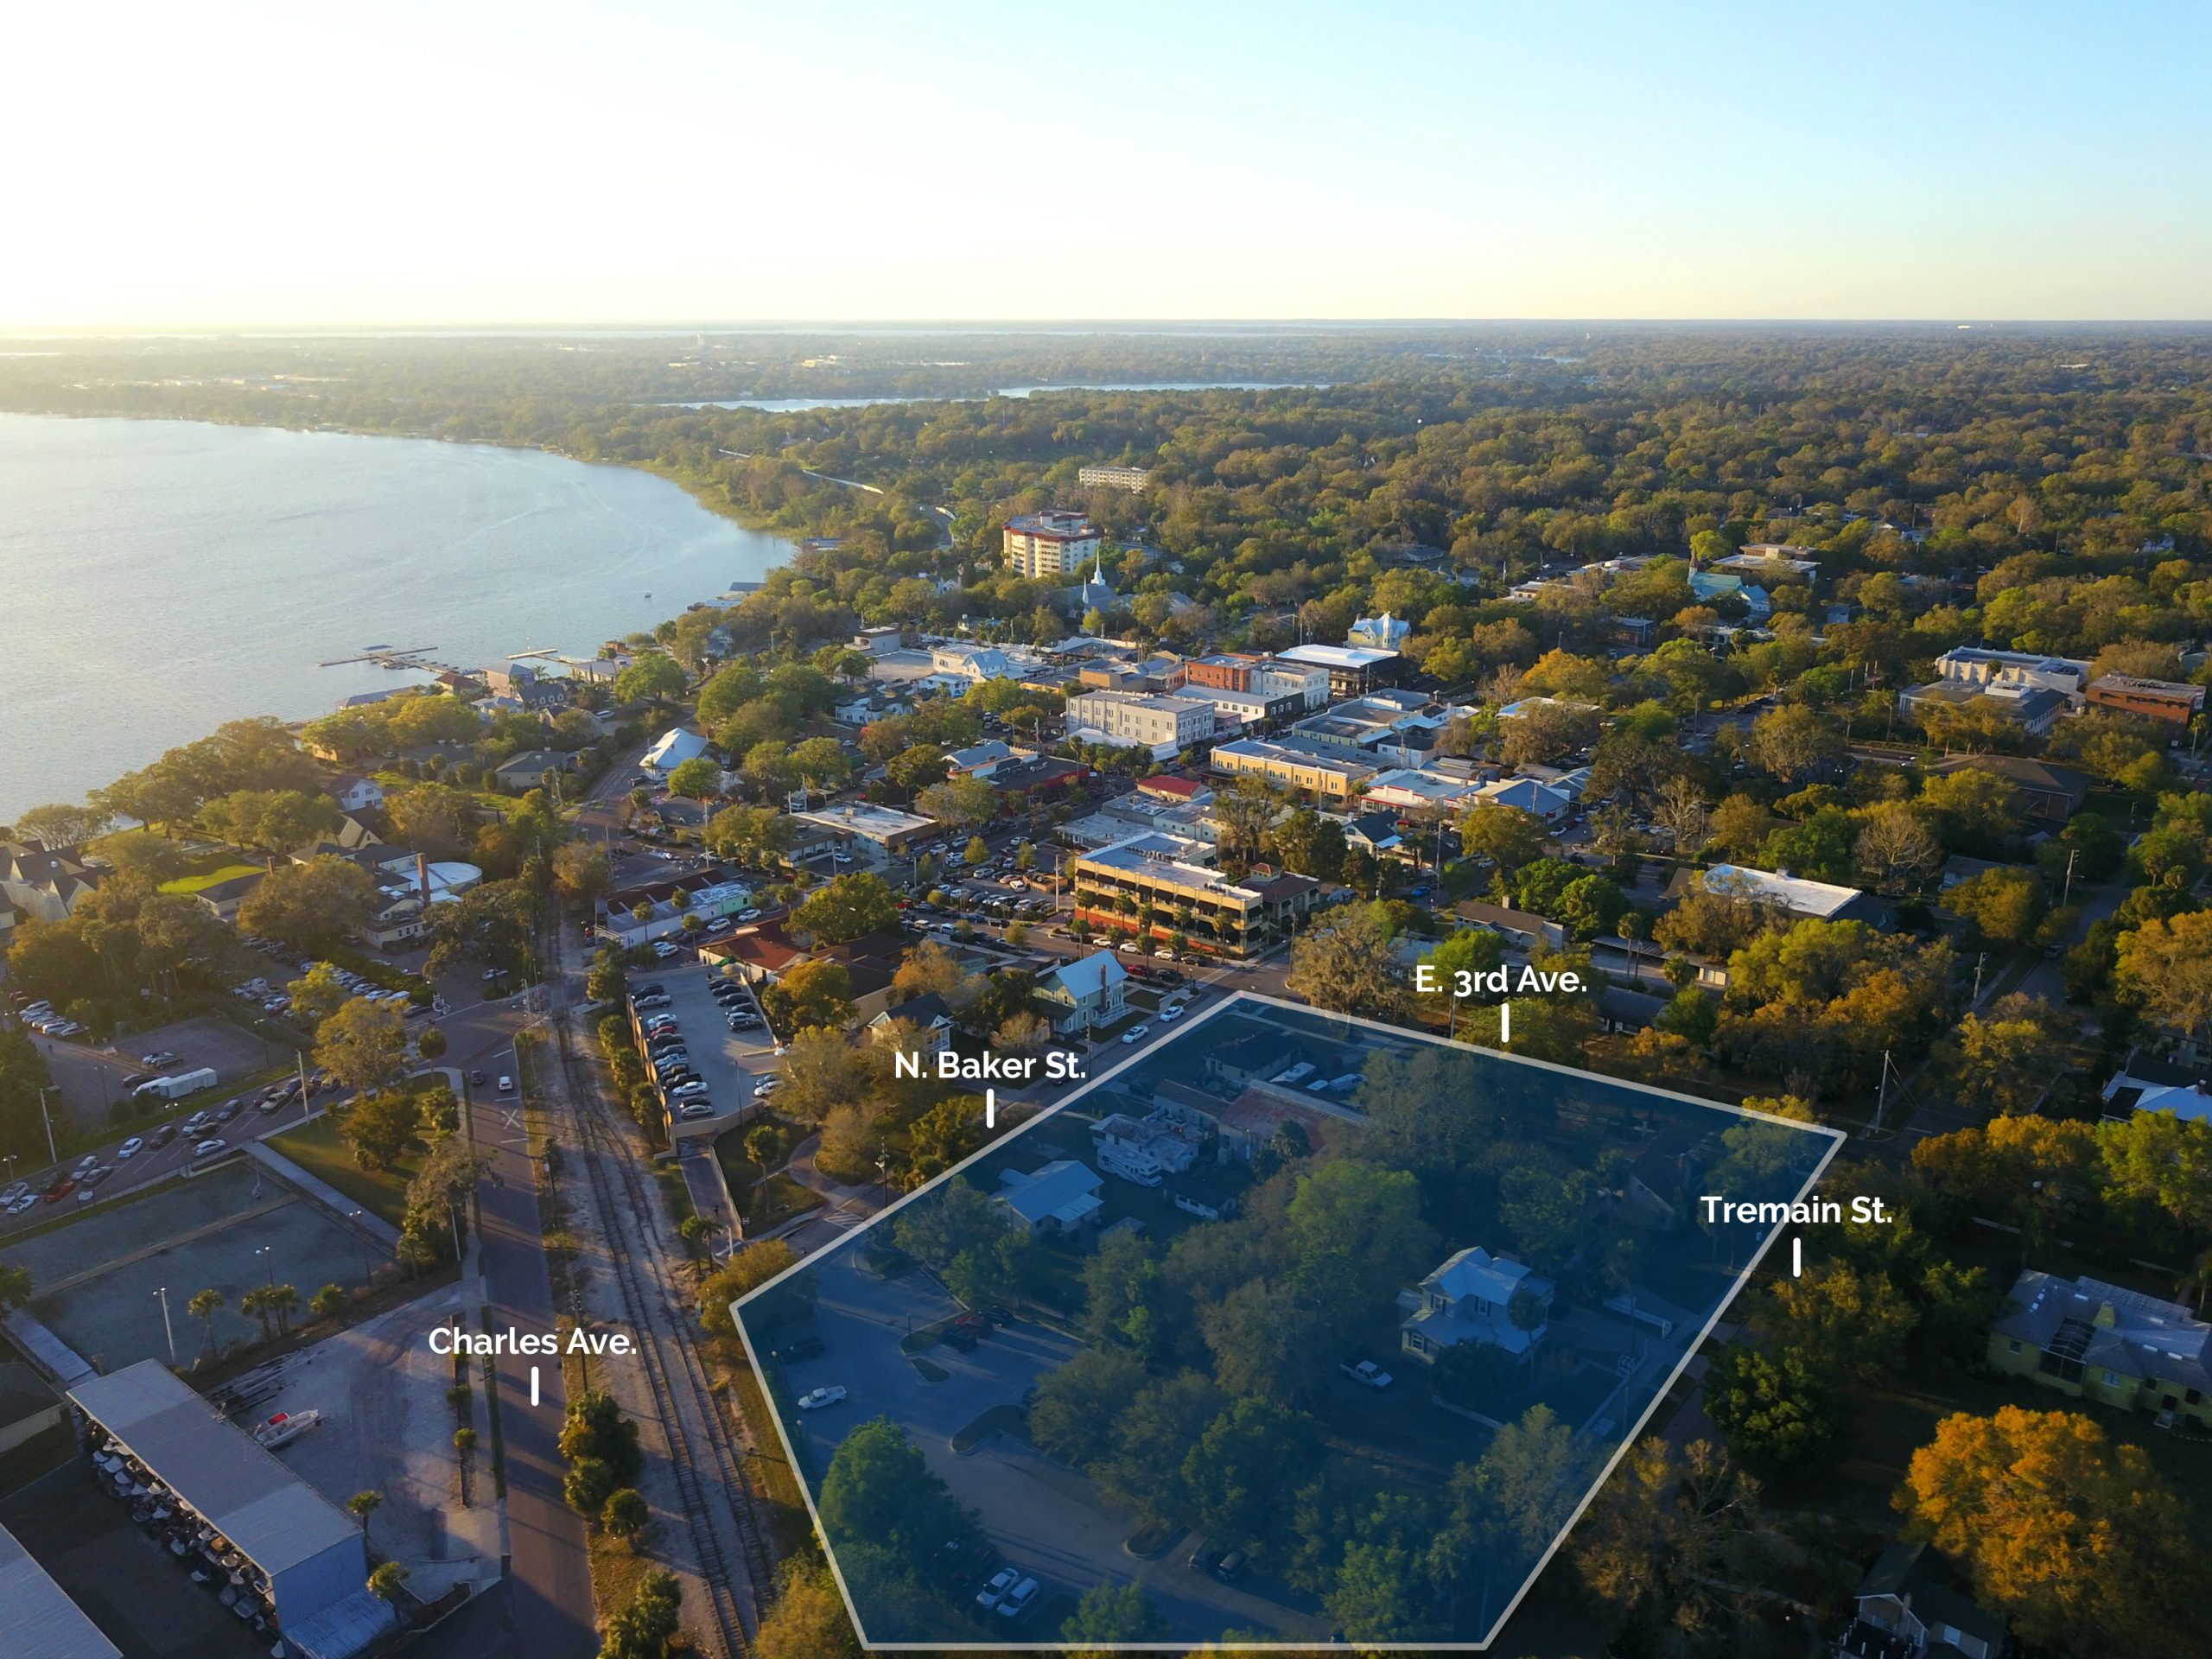 aerial image over mount dora with graphic overlay highlighting the gaslight district of downtown